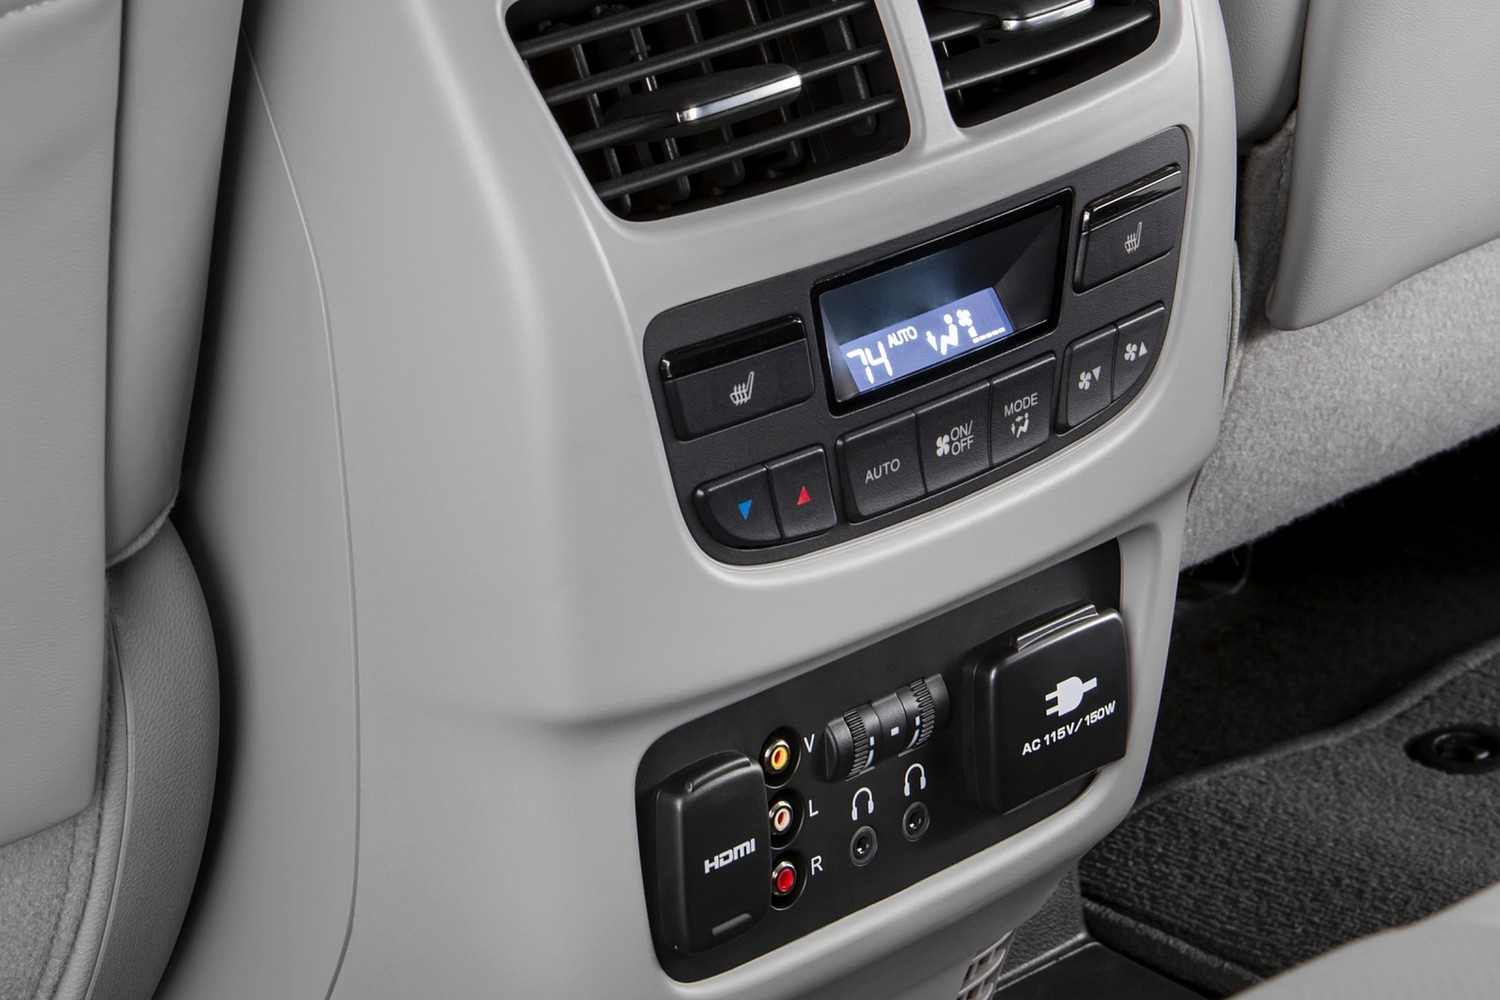 Acura MDX SH-AWD w/Technology and Entertainment Packages 4dr SUV Interior Detail (2014 model year shown)